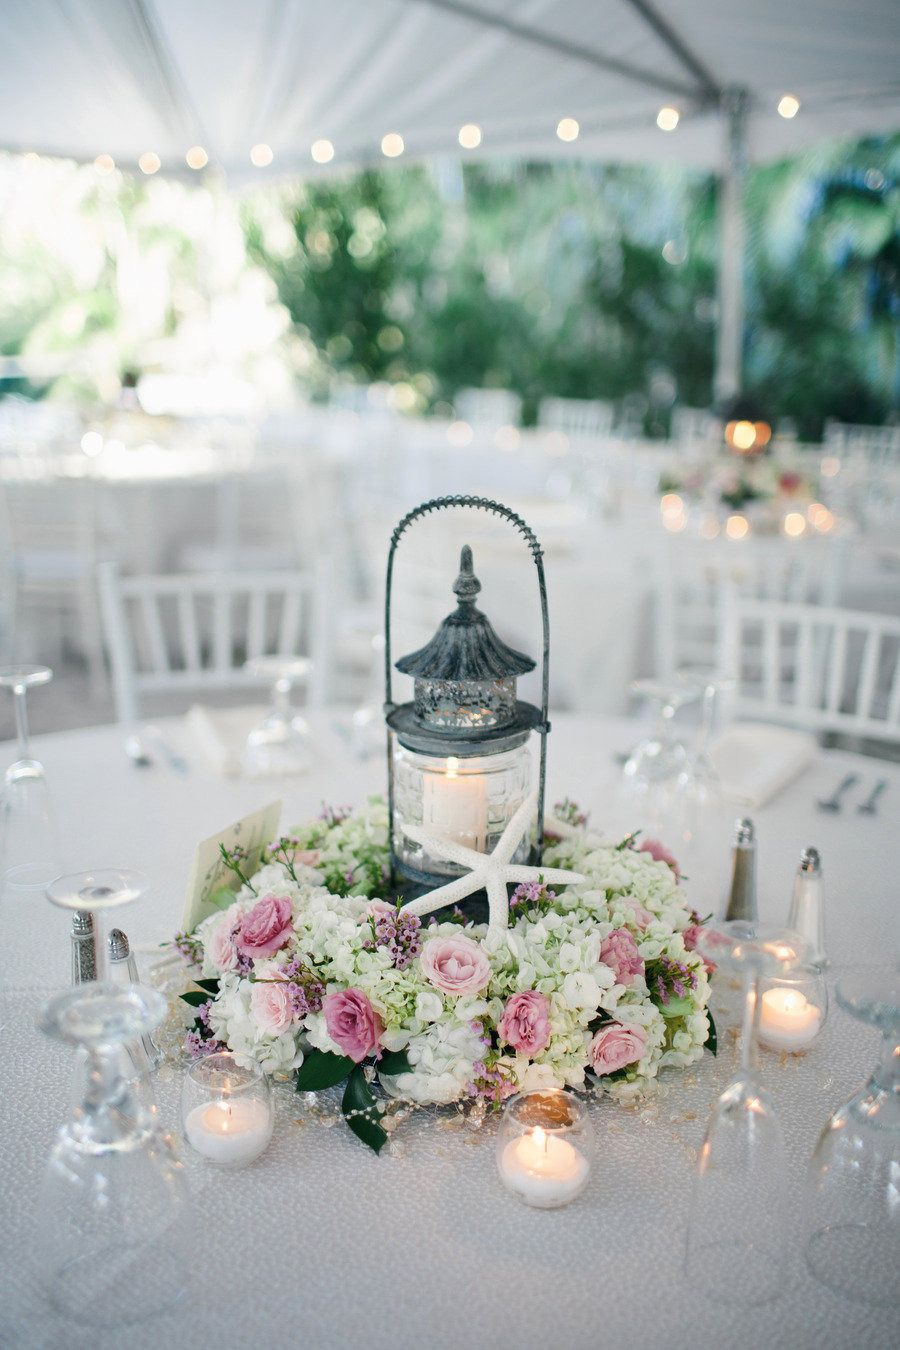 Anna Maria Island Wedding at Limefish House from Brooke Images ...